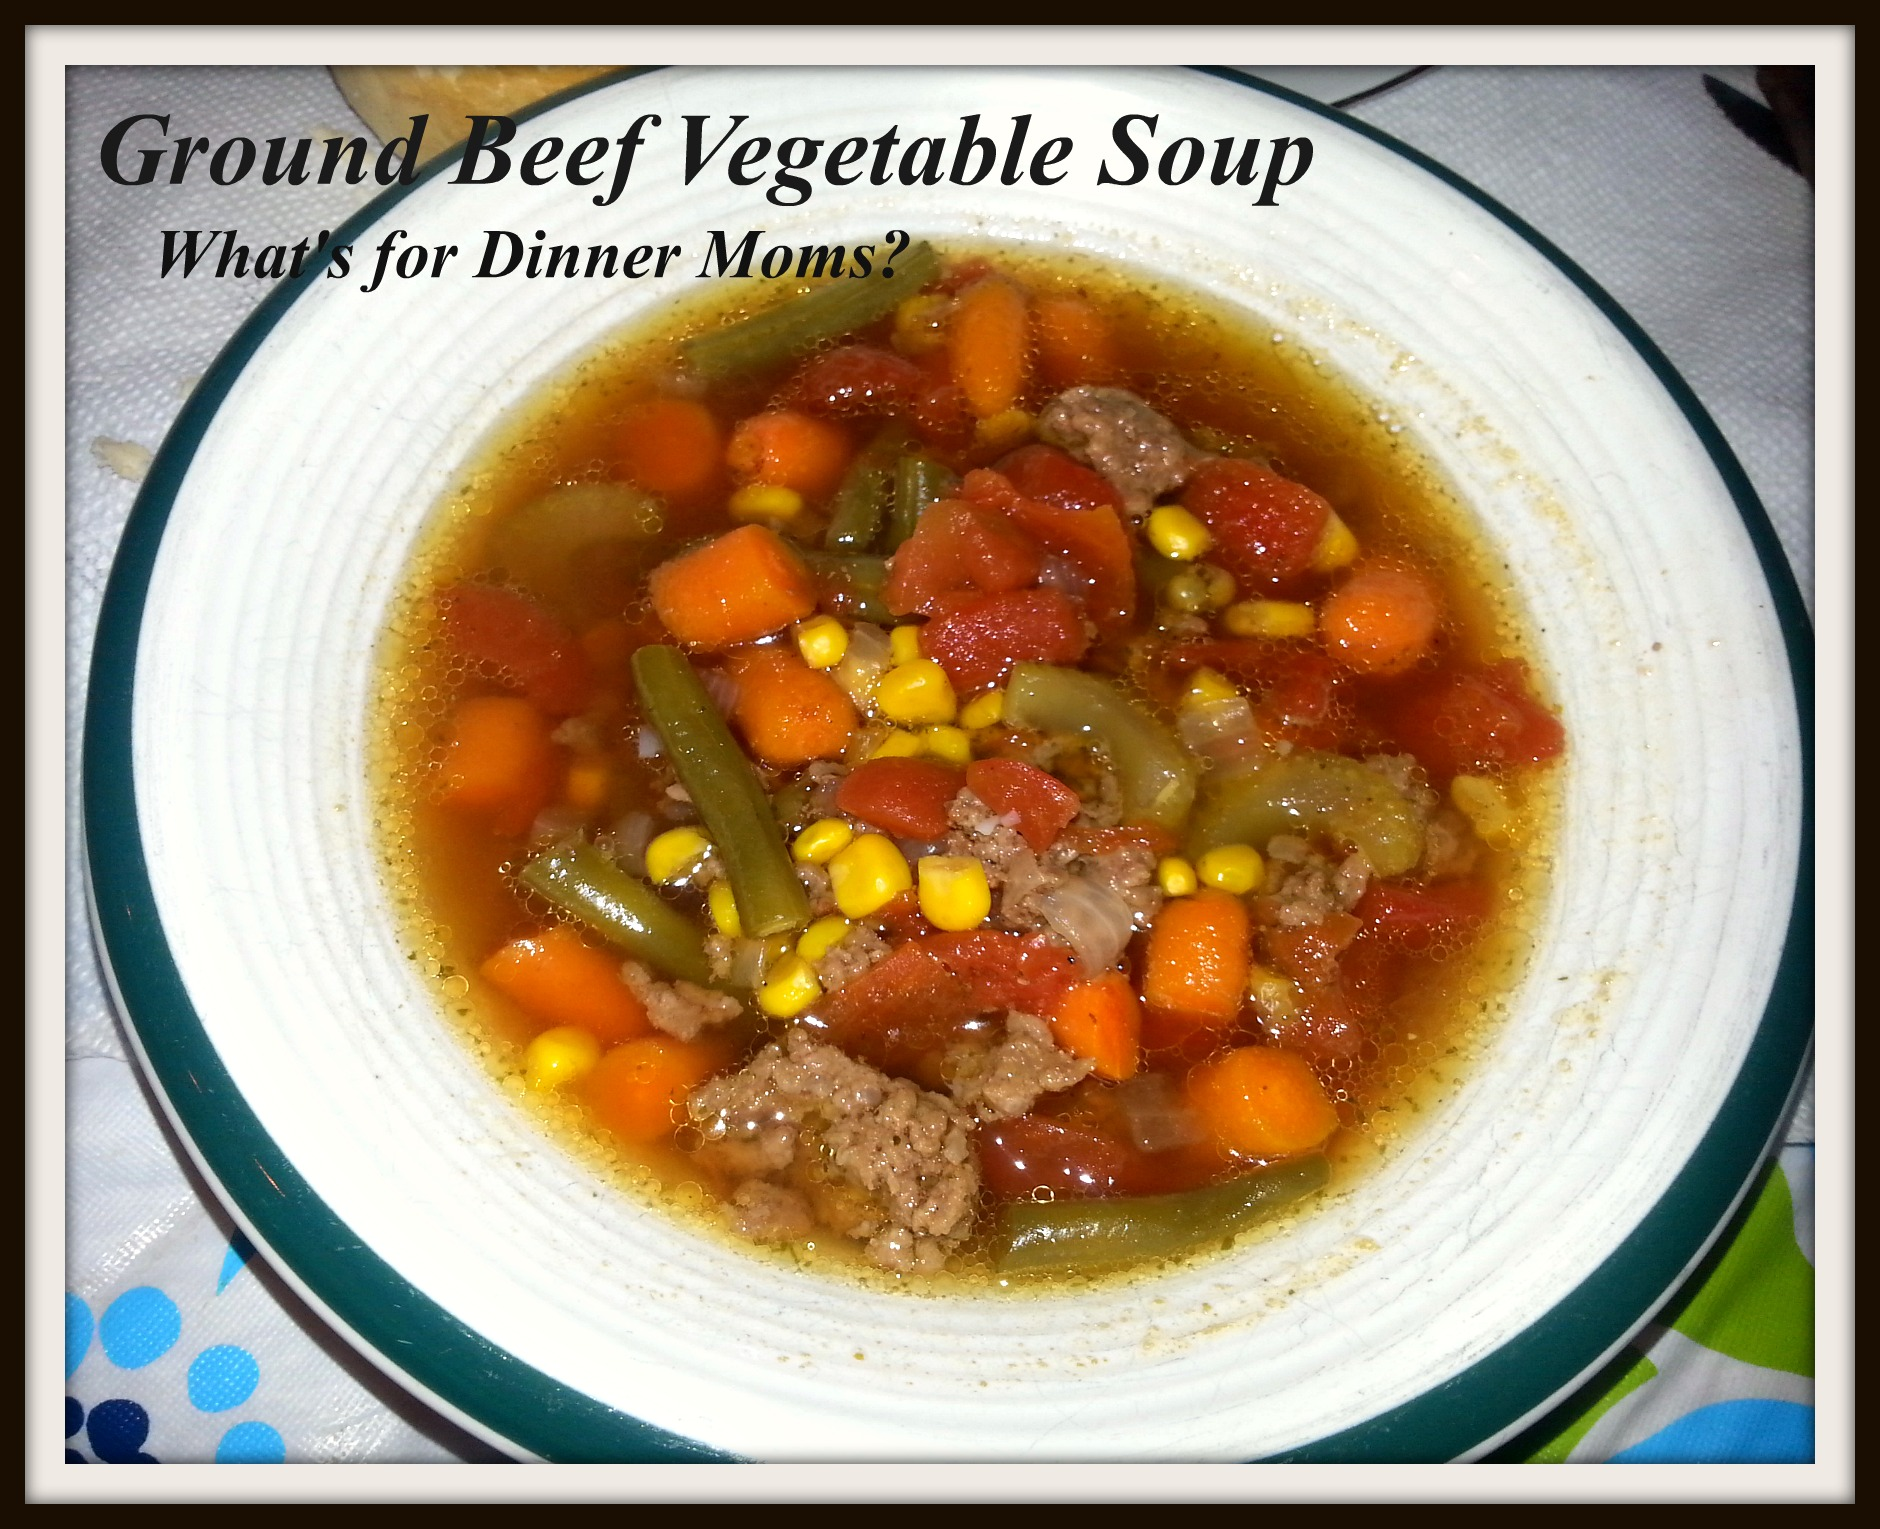 ... thawing in my refrigerator so it became a Ground Beef Vegetable Soup